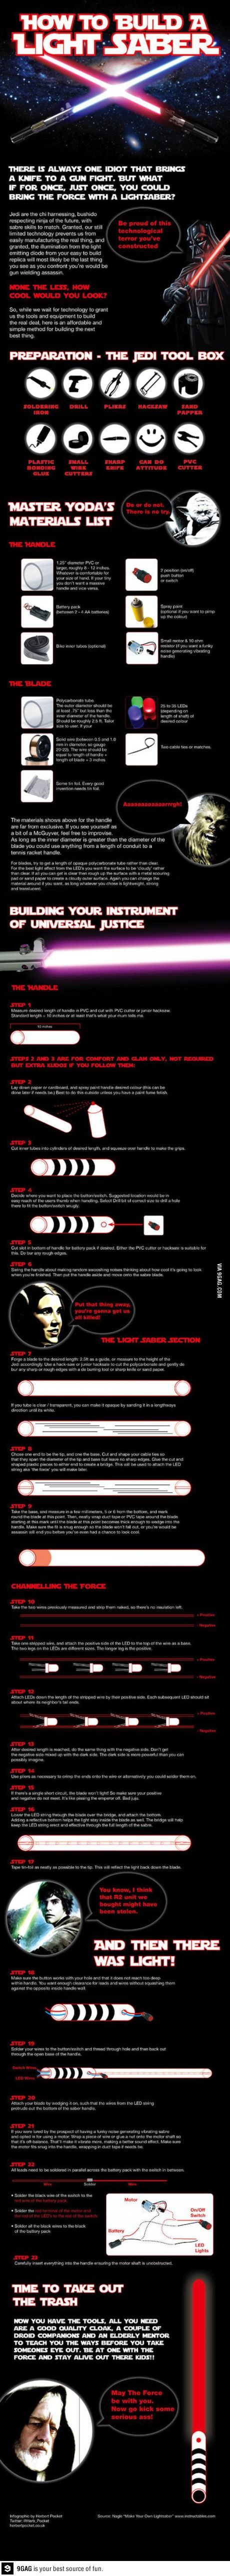 How to build your own lightsaber!